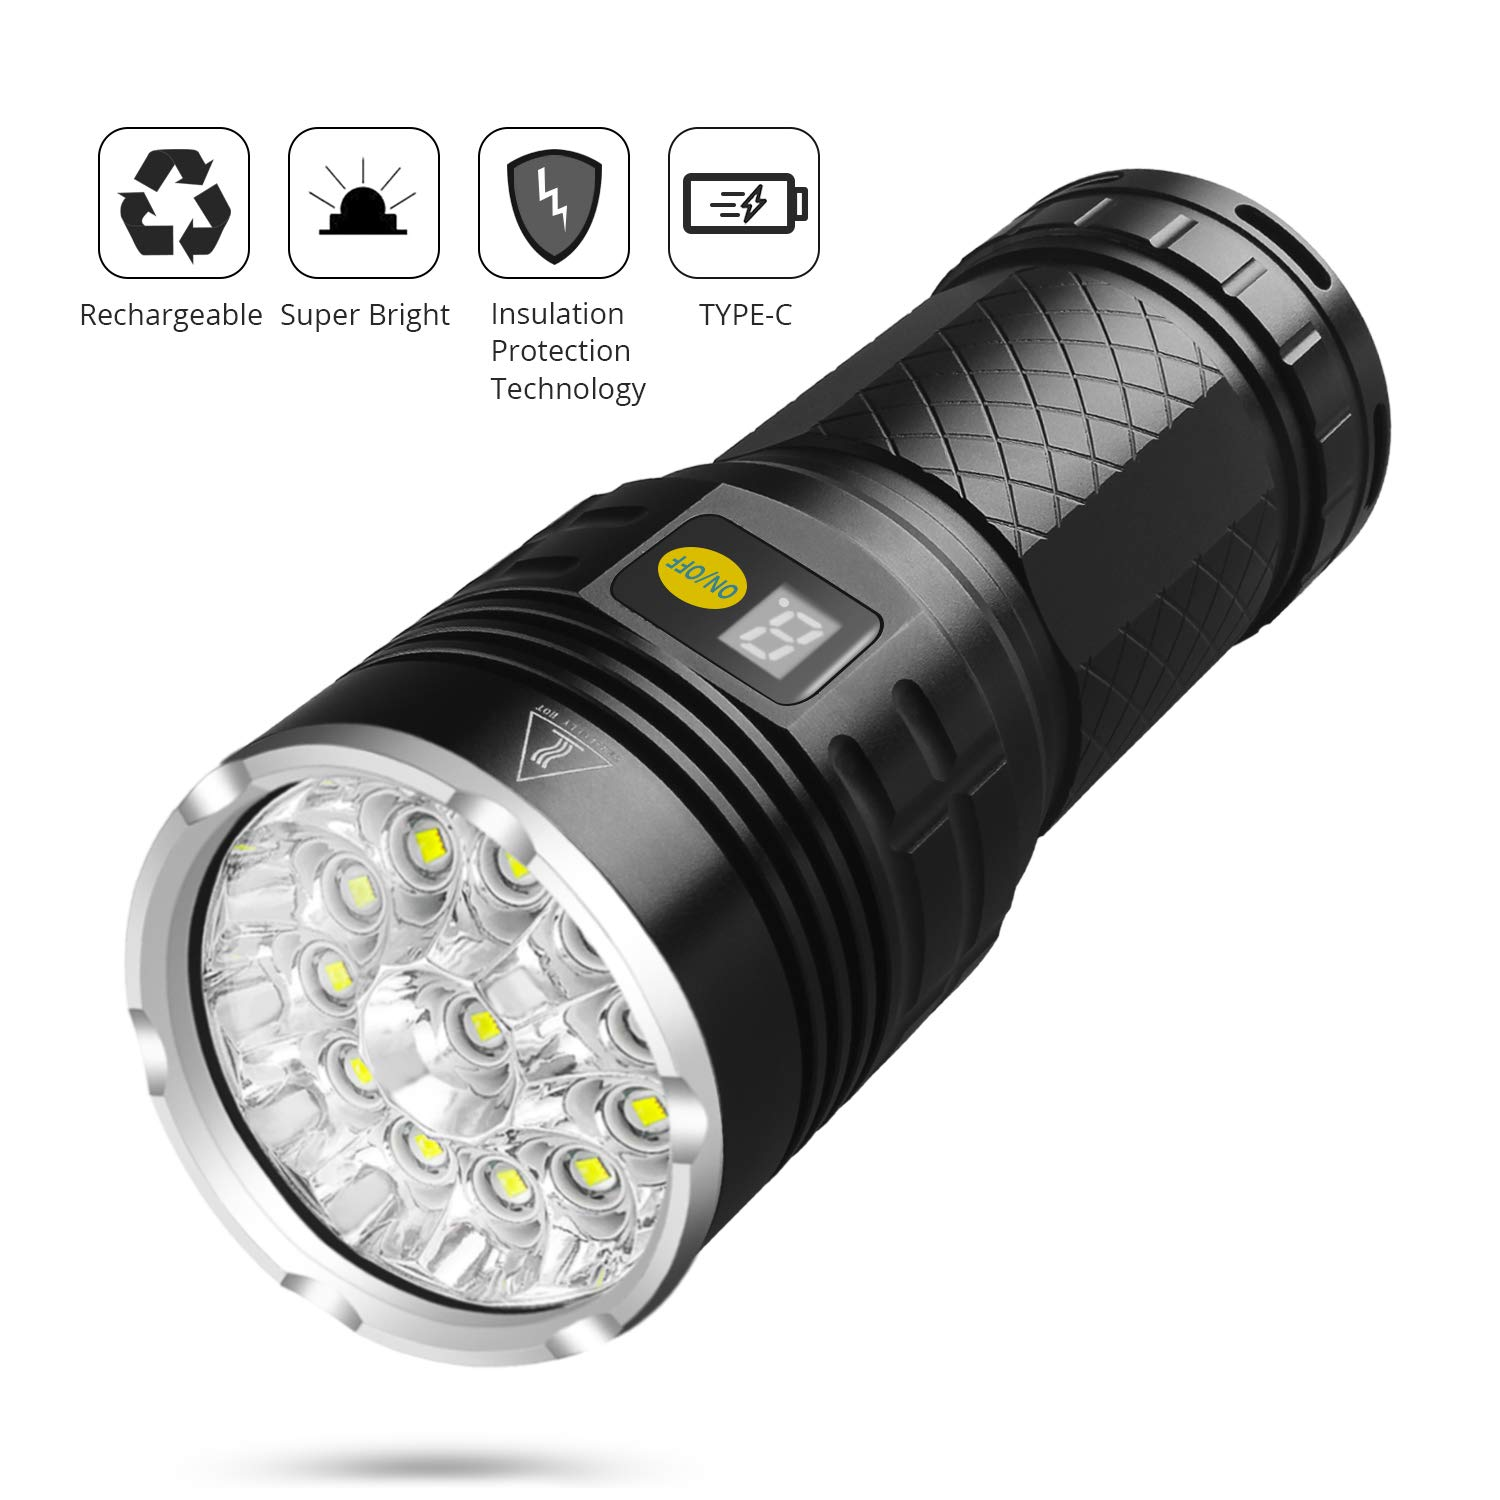 Sondiko 10000 Lumen Super Bright Led Flashlight, Rechargeable Type-C 12xLEDs 4 Modes Torch with Power Display Function&Insulation Protection Technology, Built-in Batteries by Sondiko